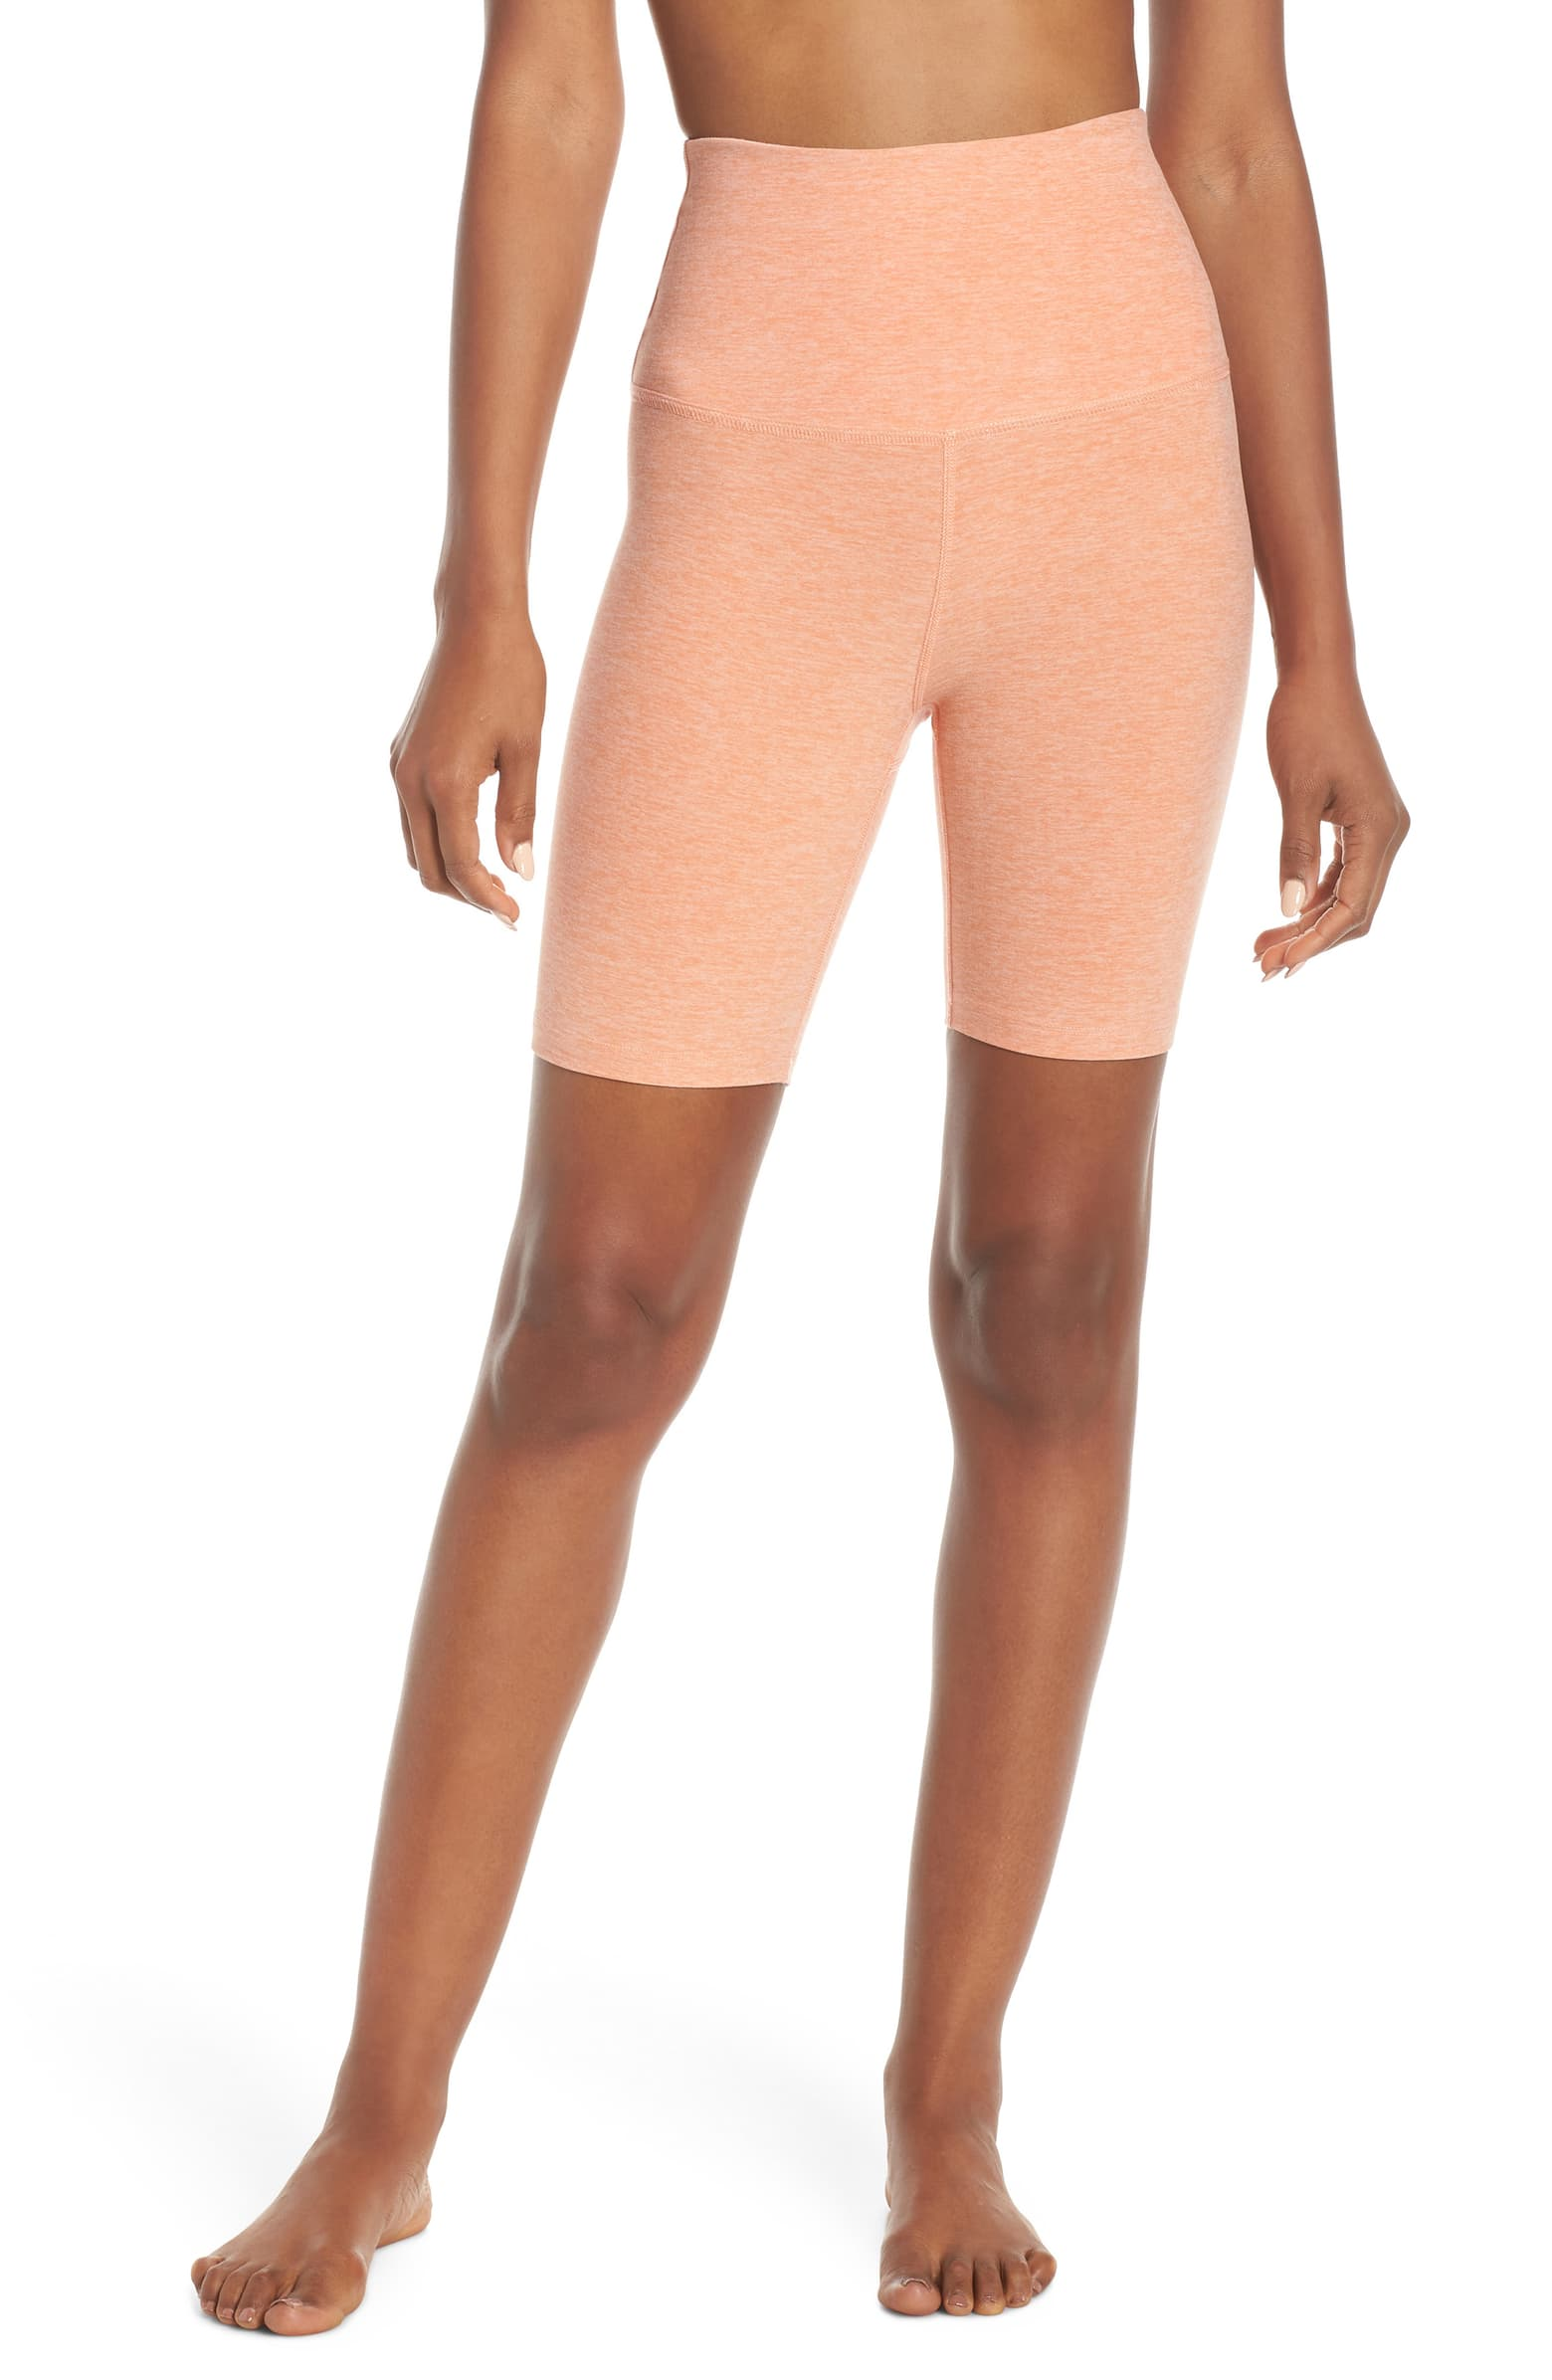 I wore these biker shorts under my dresses to 1) avoid chafing (curvy girls, unite!) and 2) ensure that even in high winds no tushy would be seen. They're SO thin + SO comfortable it feels like I'm wearing practically nothing!! I personally like these way more than Spanx.